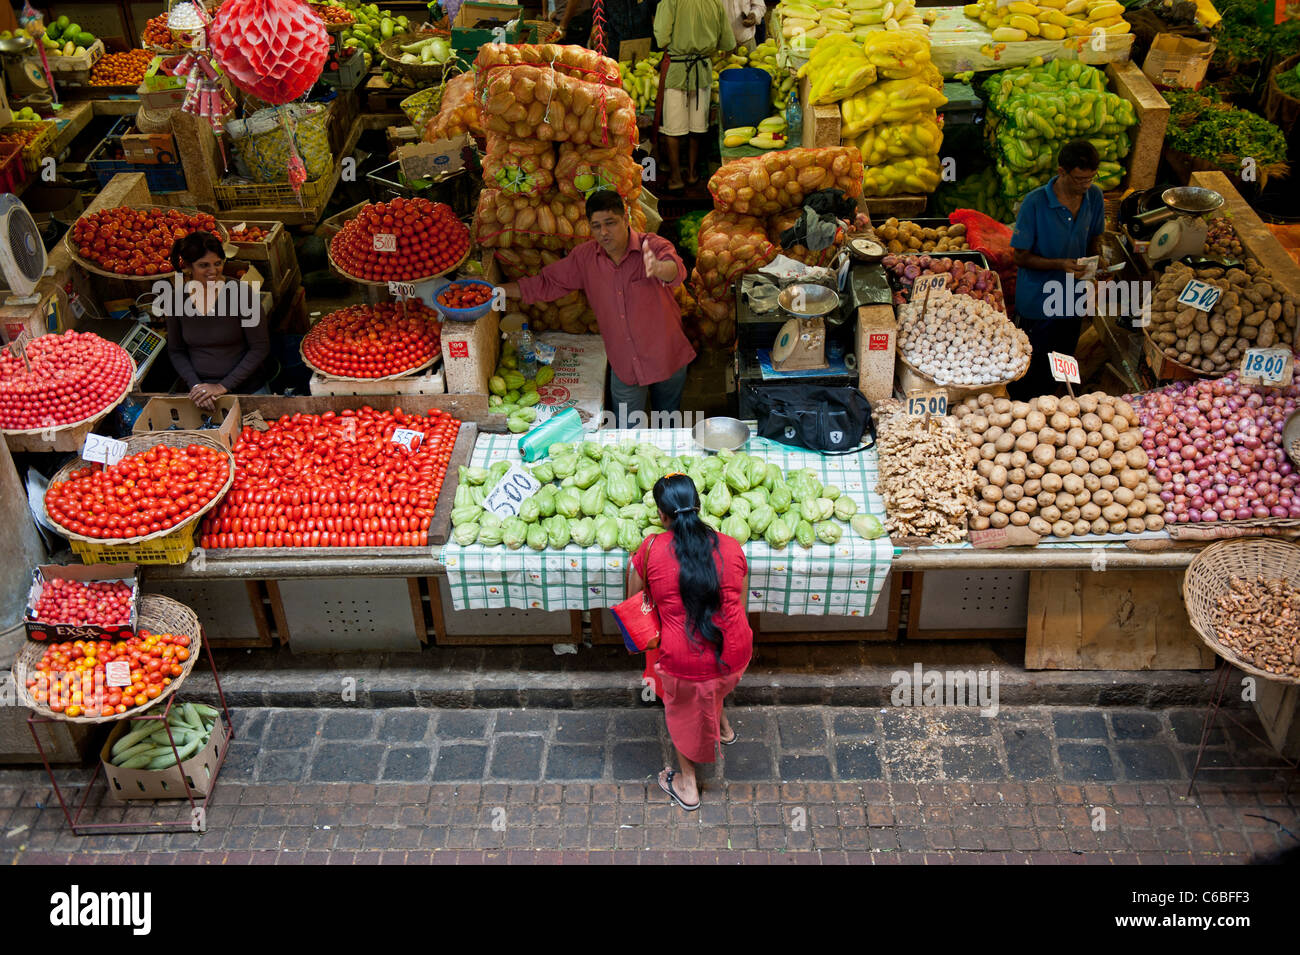 Fruit and Vegetable Market Stall in Central Market, Port Louis, Mauritius - Stock Image